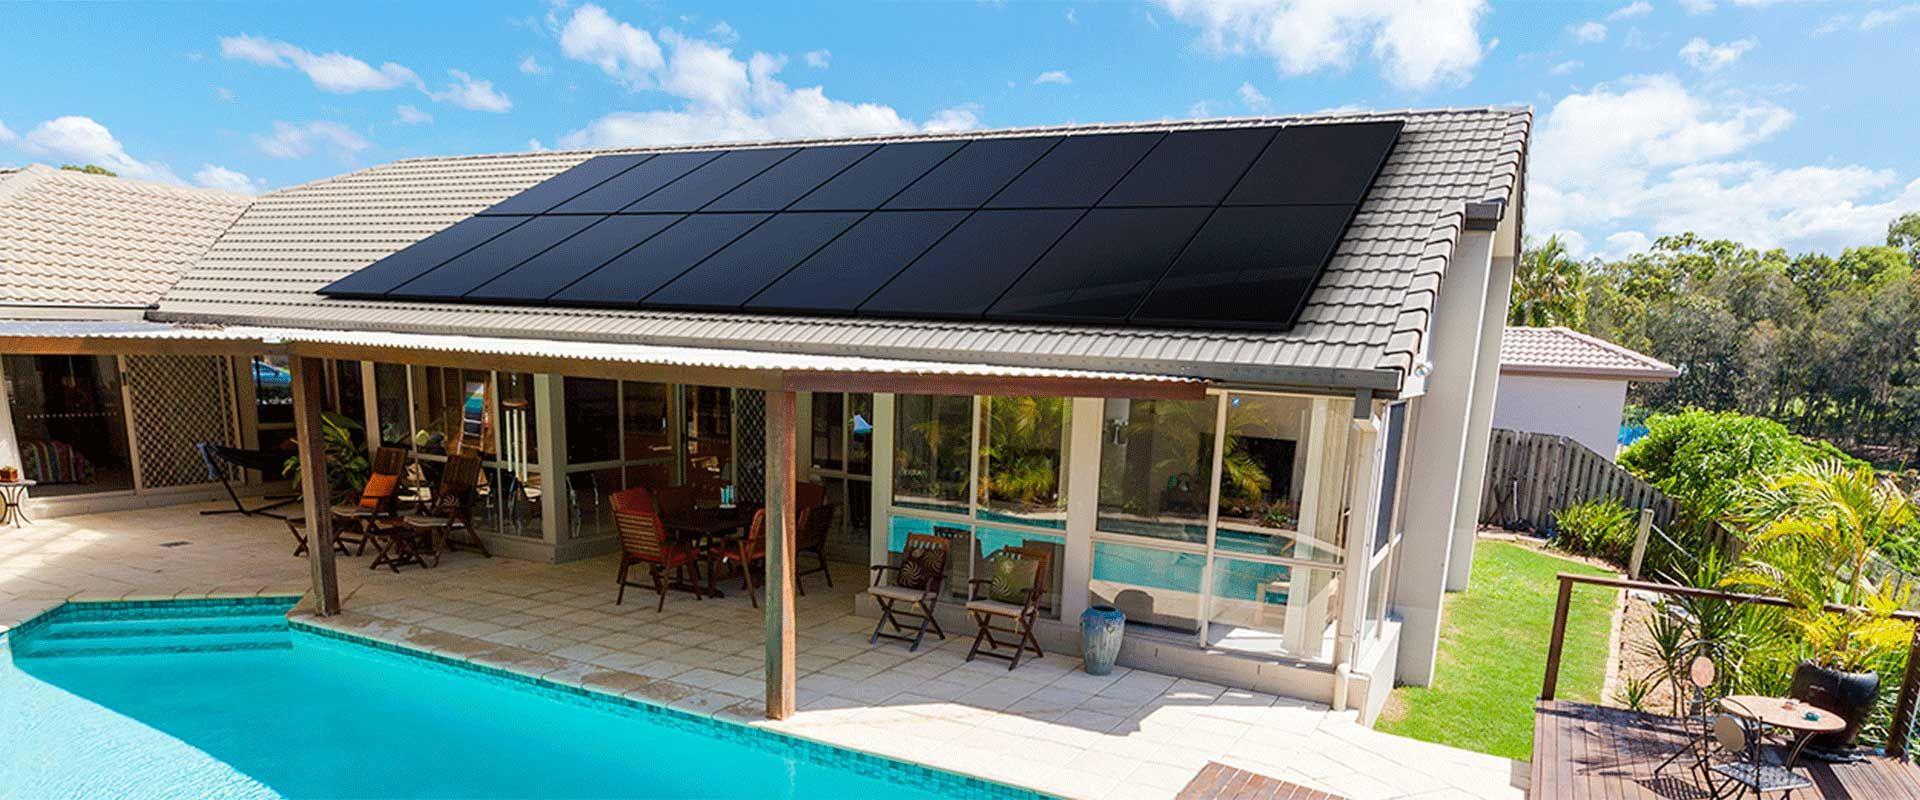 Solar Panels for Home Easy Process